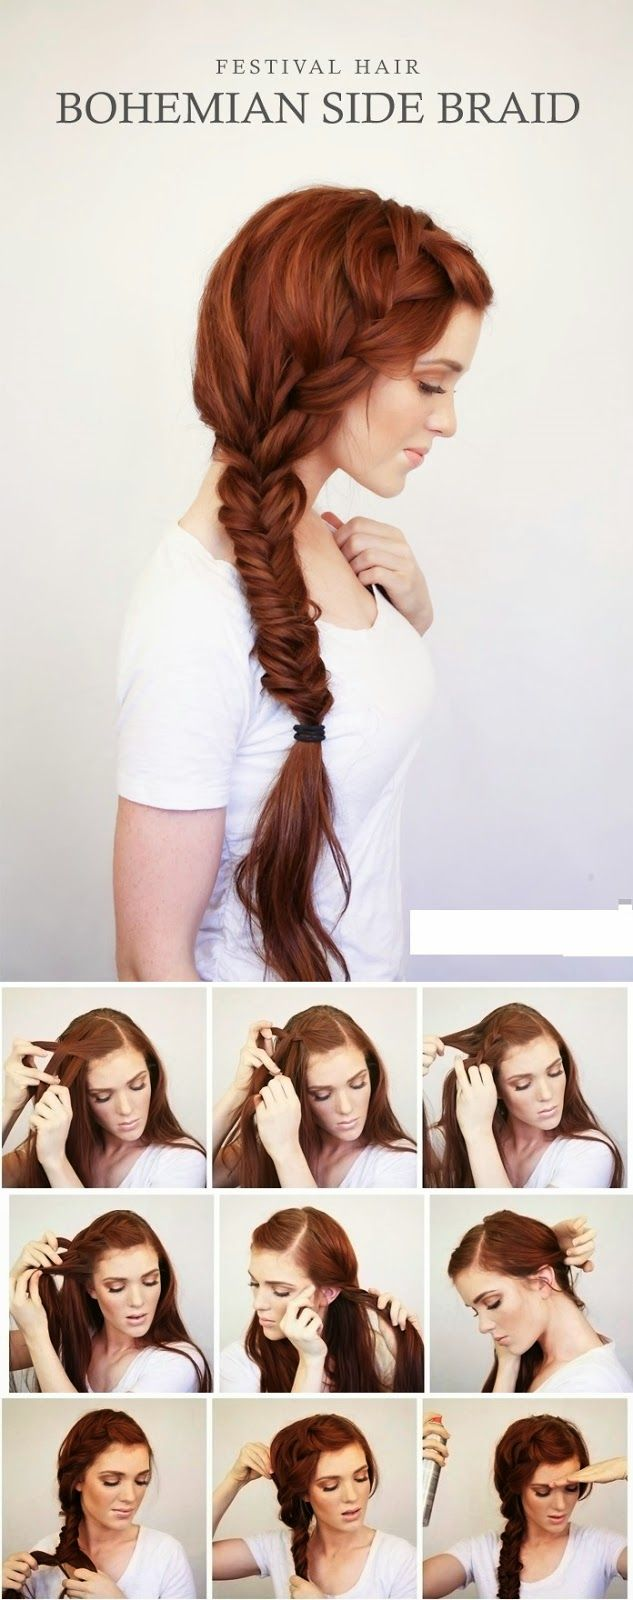 Strange 1000 Ideas About Side Braid Tutorial On Pinterest Side Braids Hairstyle Inspiration Daily Dogsangcom